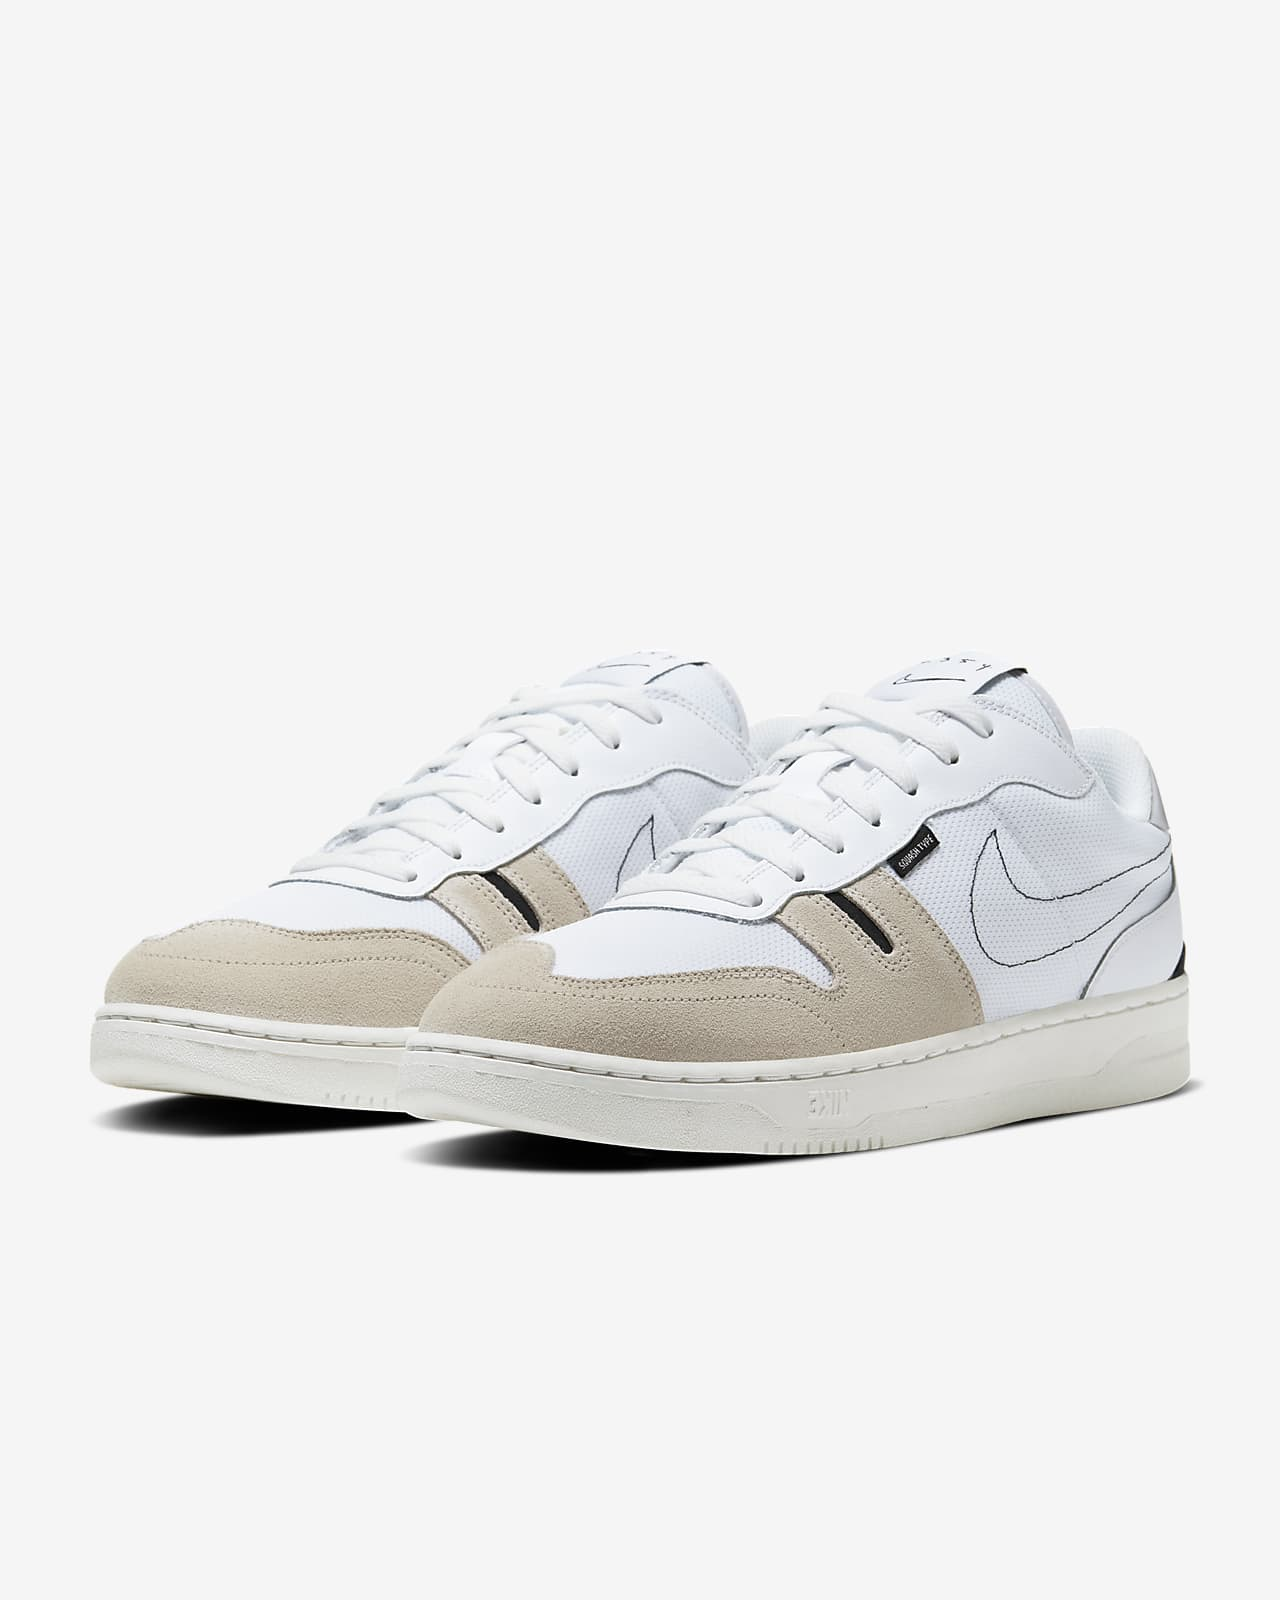 Chaussure Nike Squash Type pour Homme. Nike FR